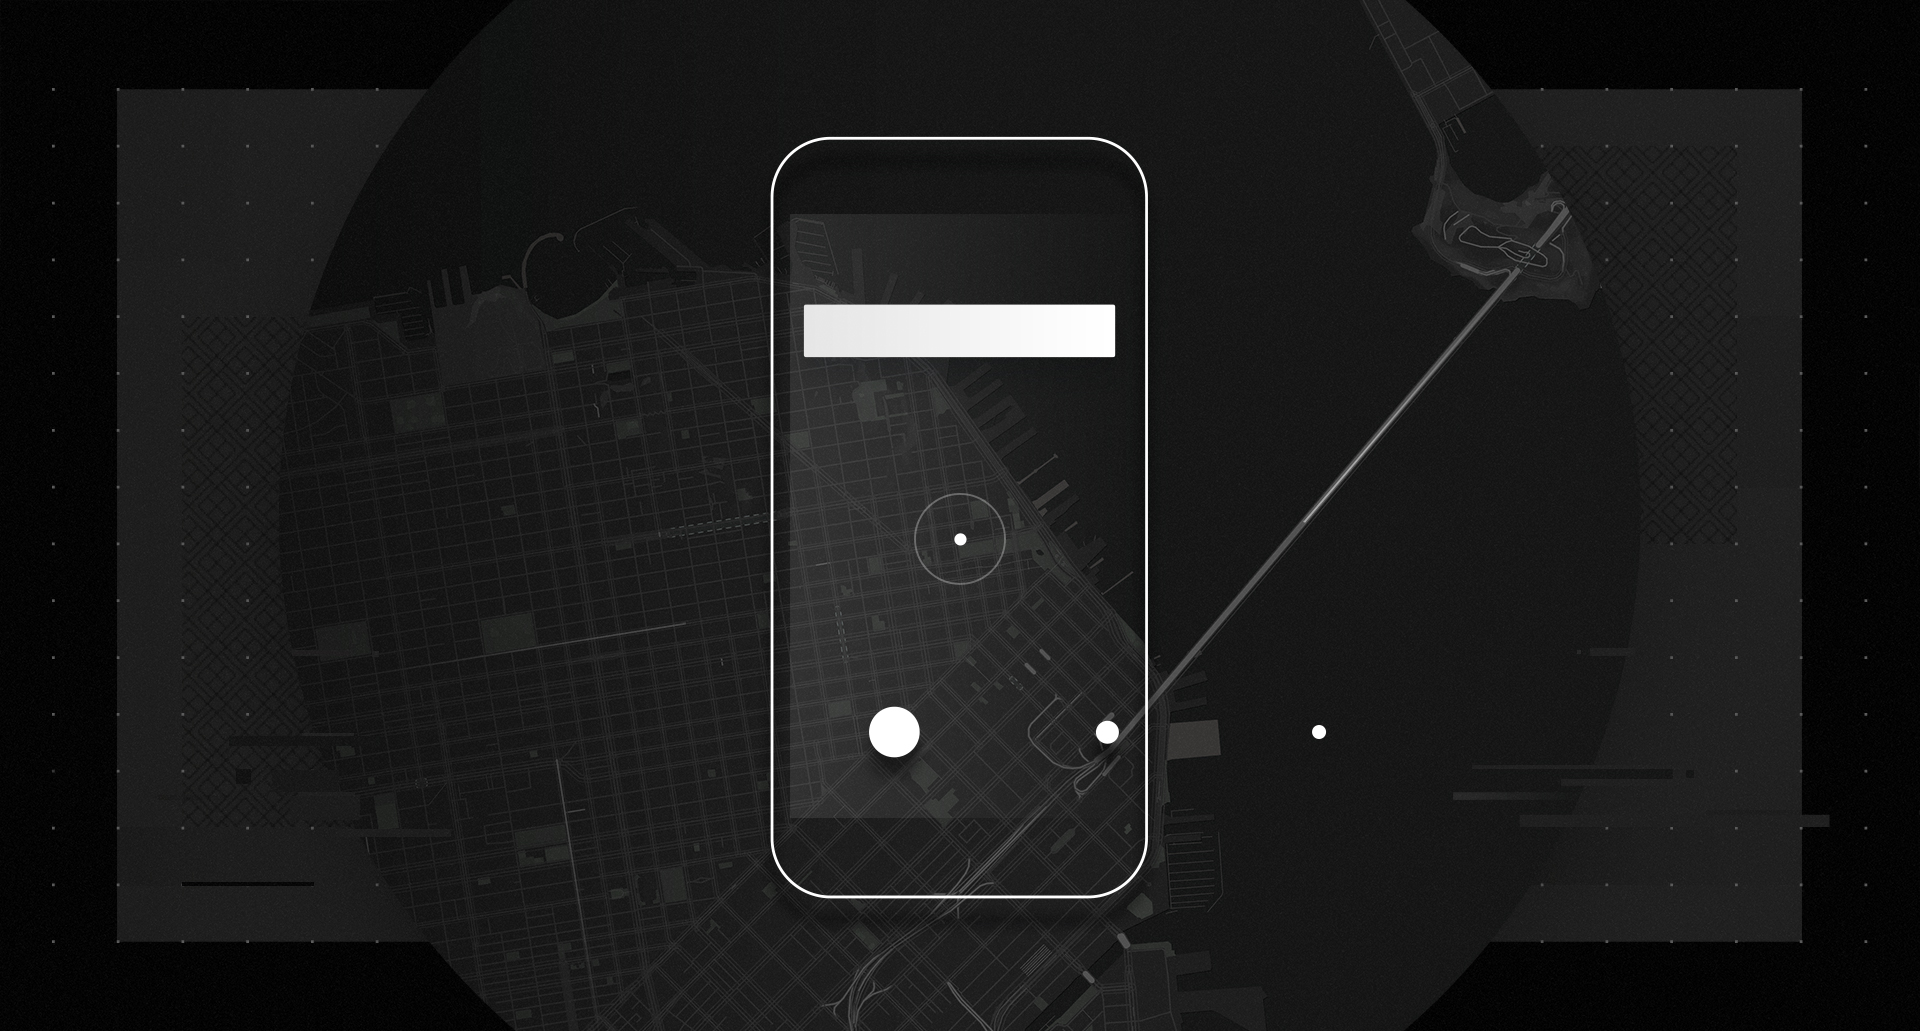 Designing the new Uber App